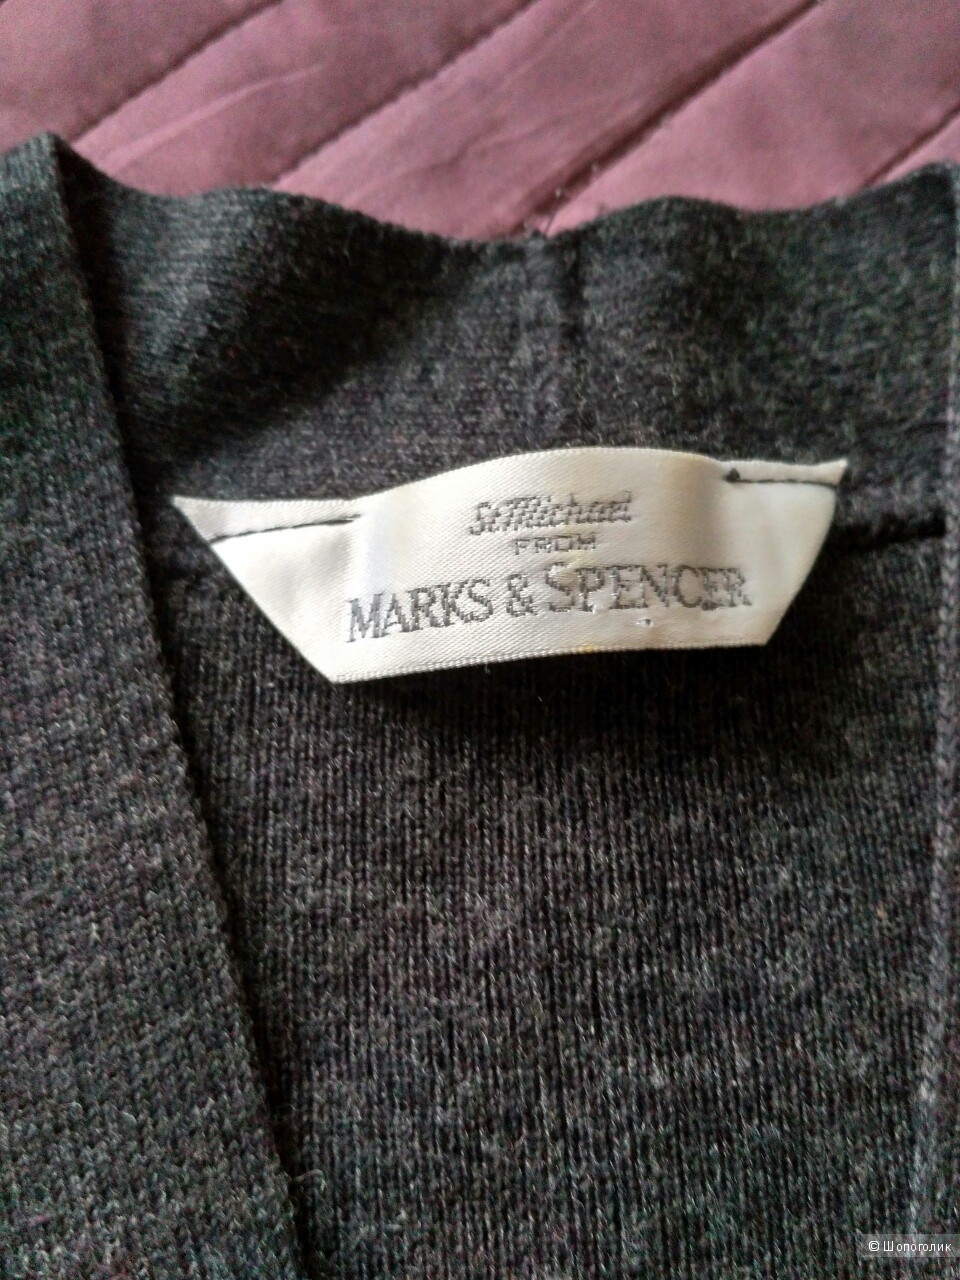 Кардиган St. Michael from Marks & Spencer, UK12